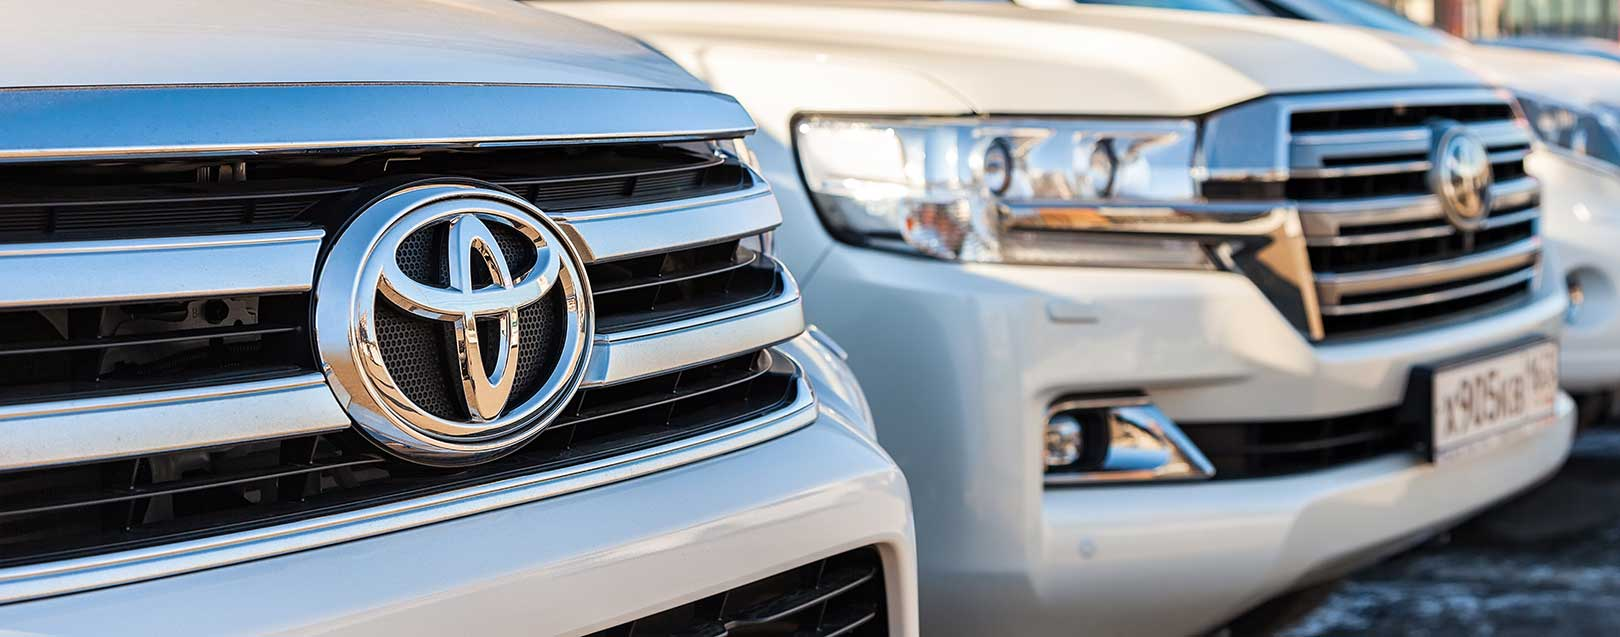 Toyota unlikely to launch new vehicles until 2020